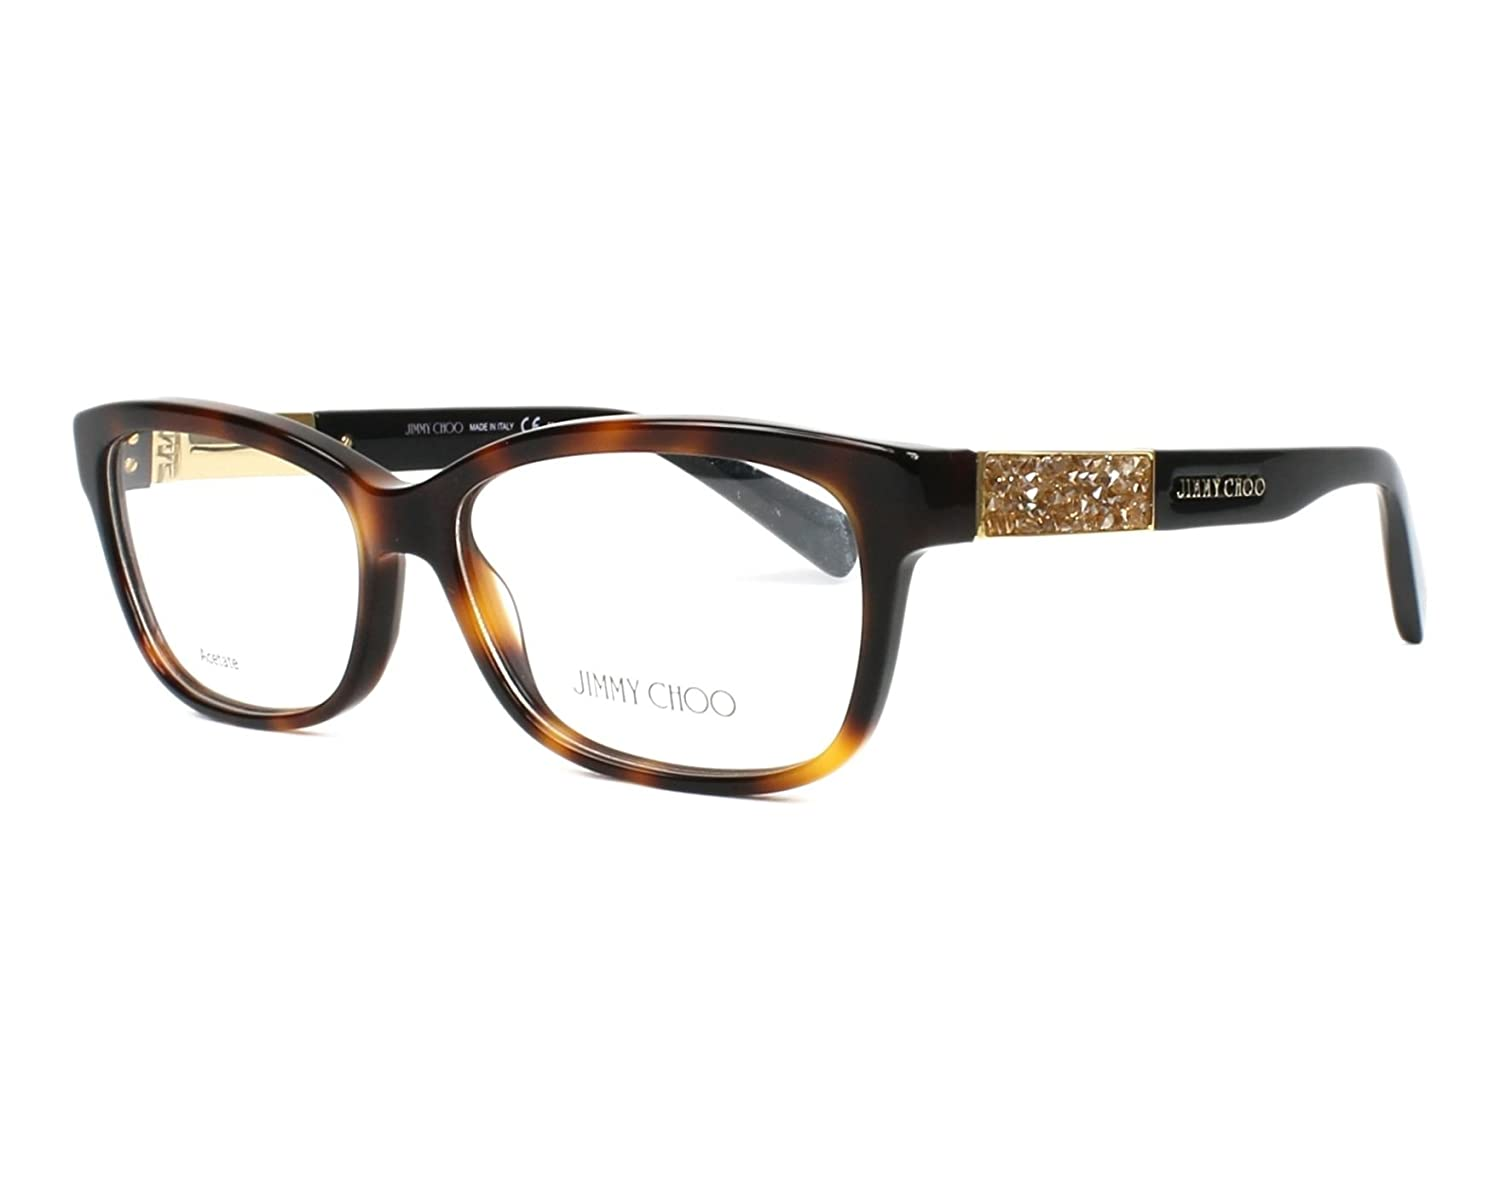 3ca71685d14 Amazon.com  JIMMY CHOO Eyeglasses 110 06VL Havana Black 53MM  Shoes